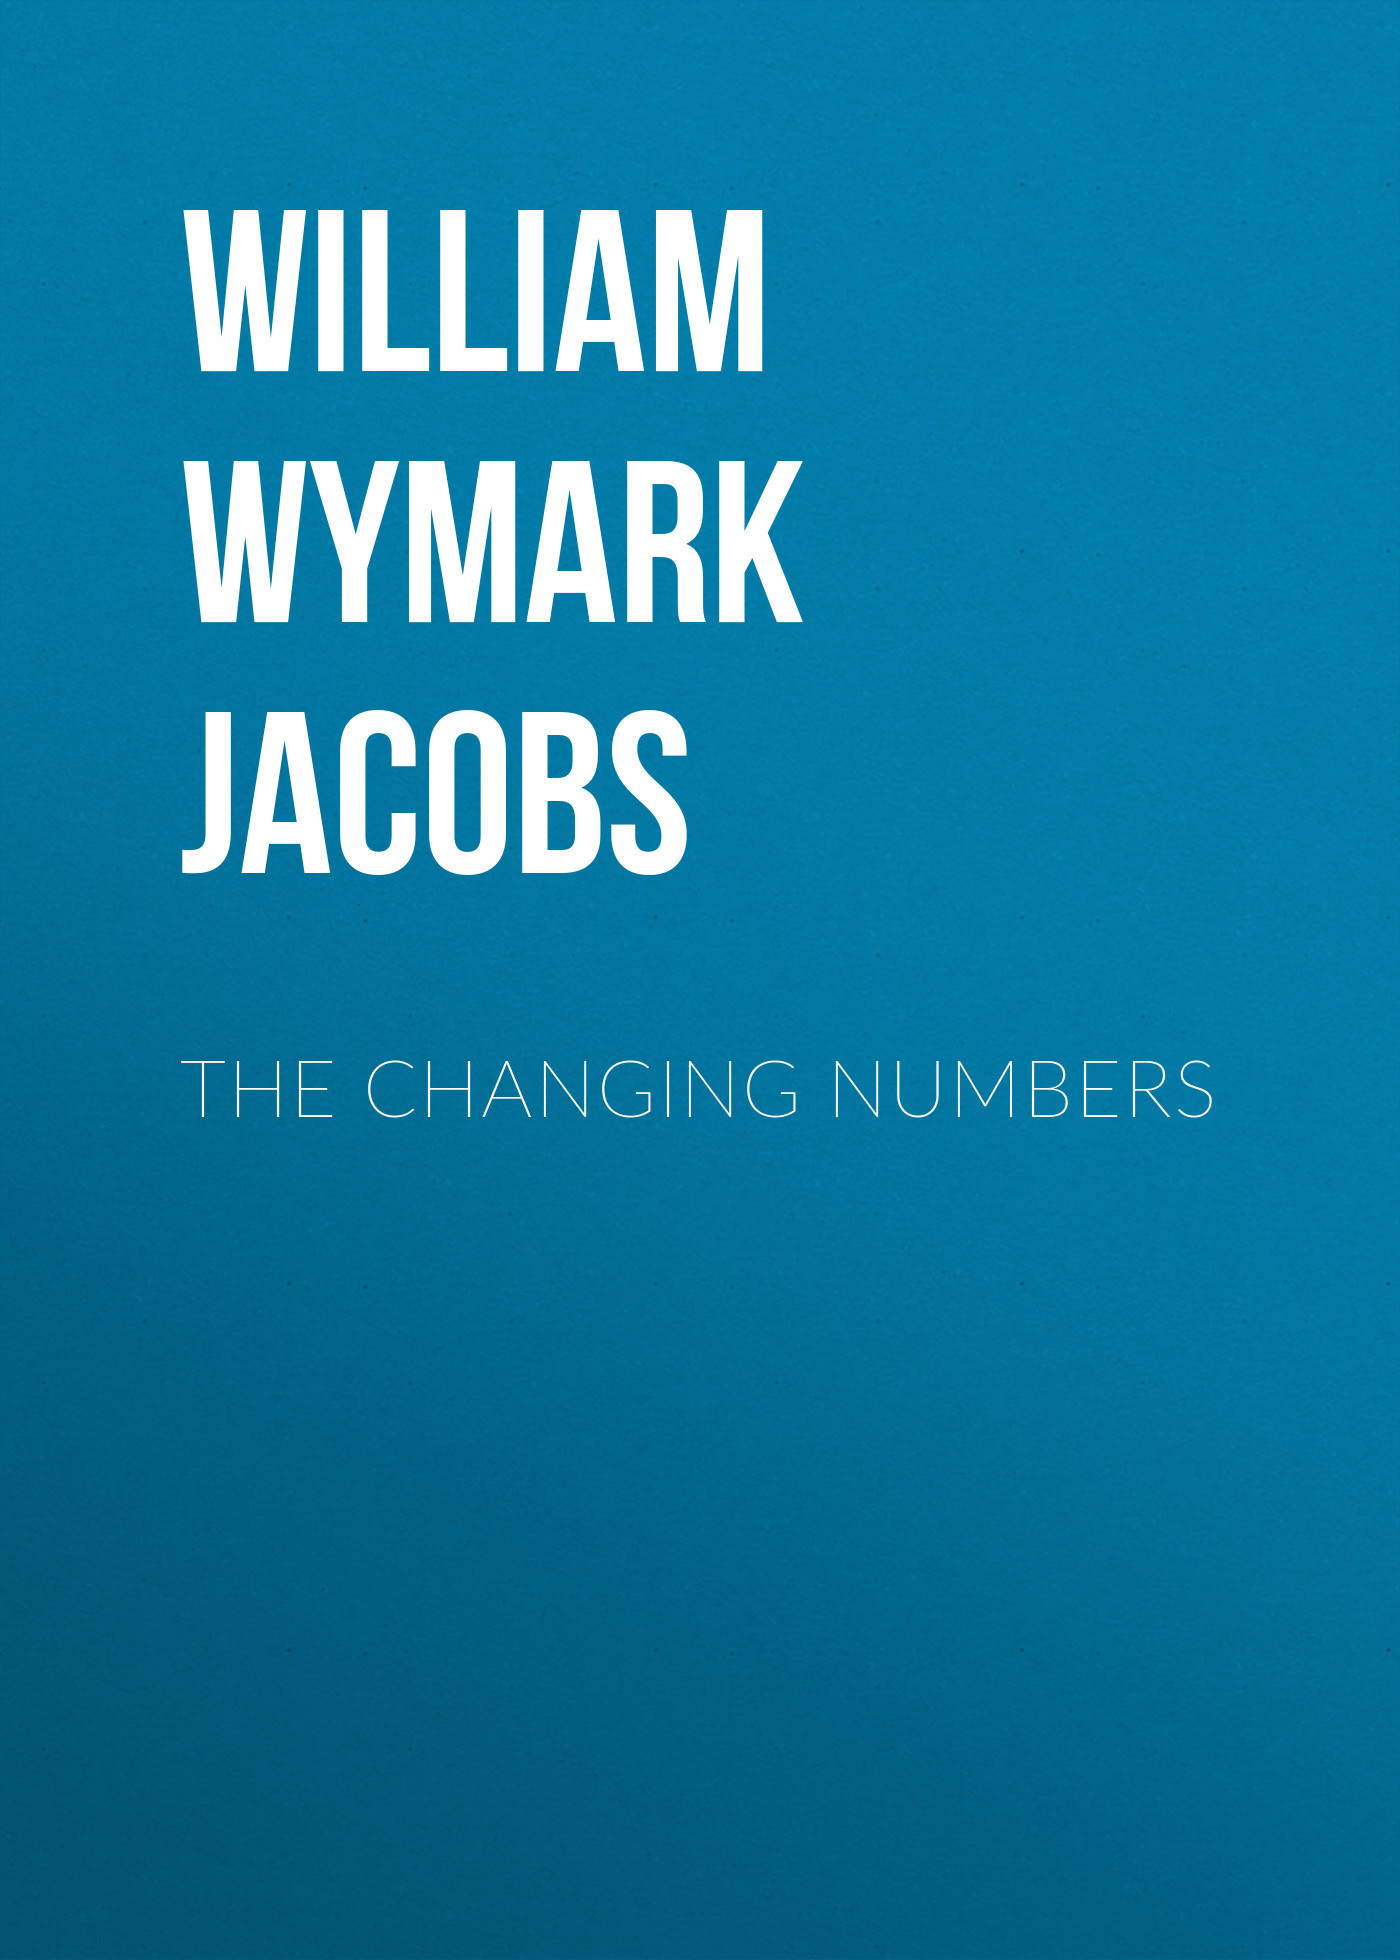 The Changing Numbers